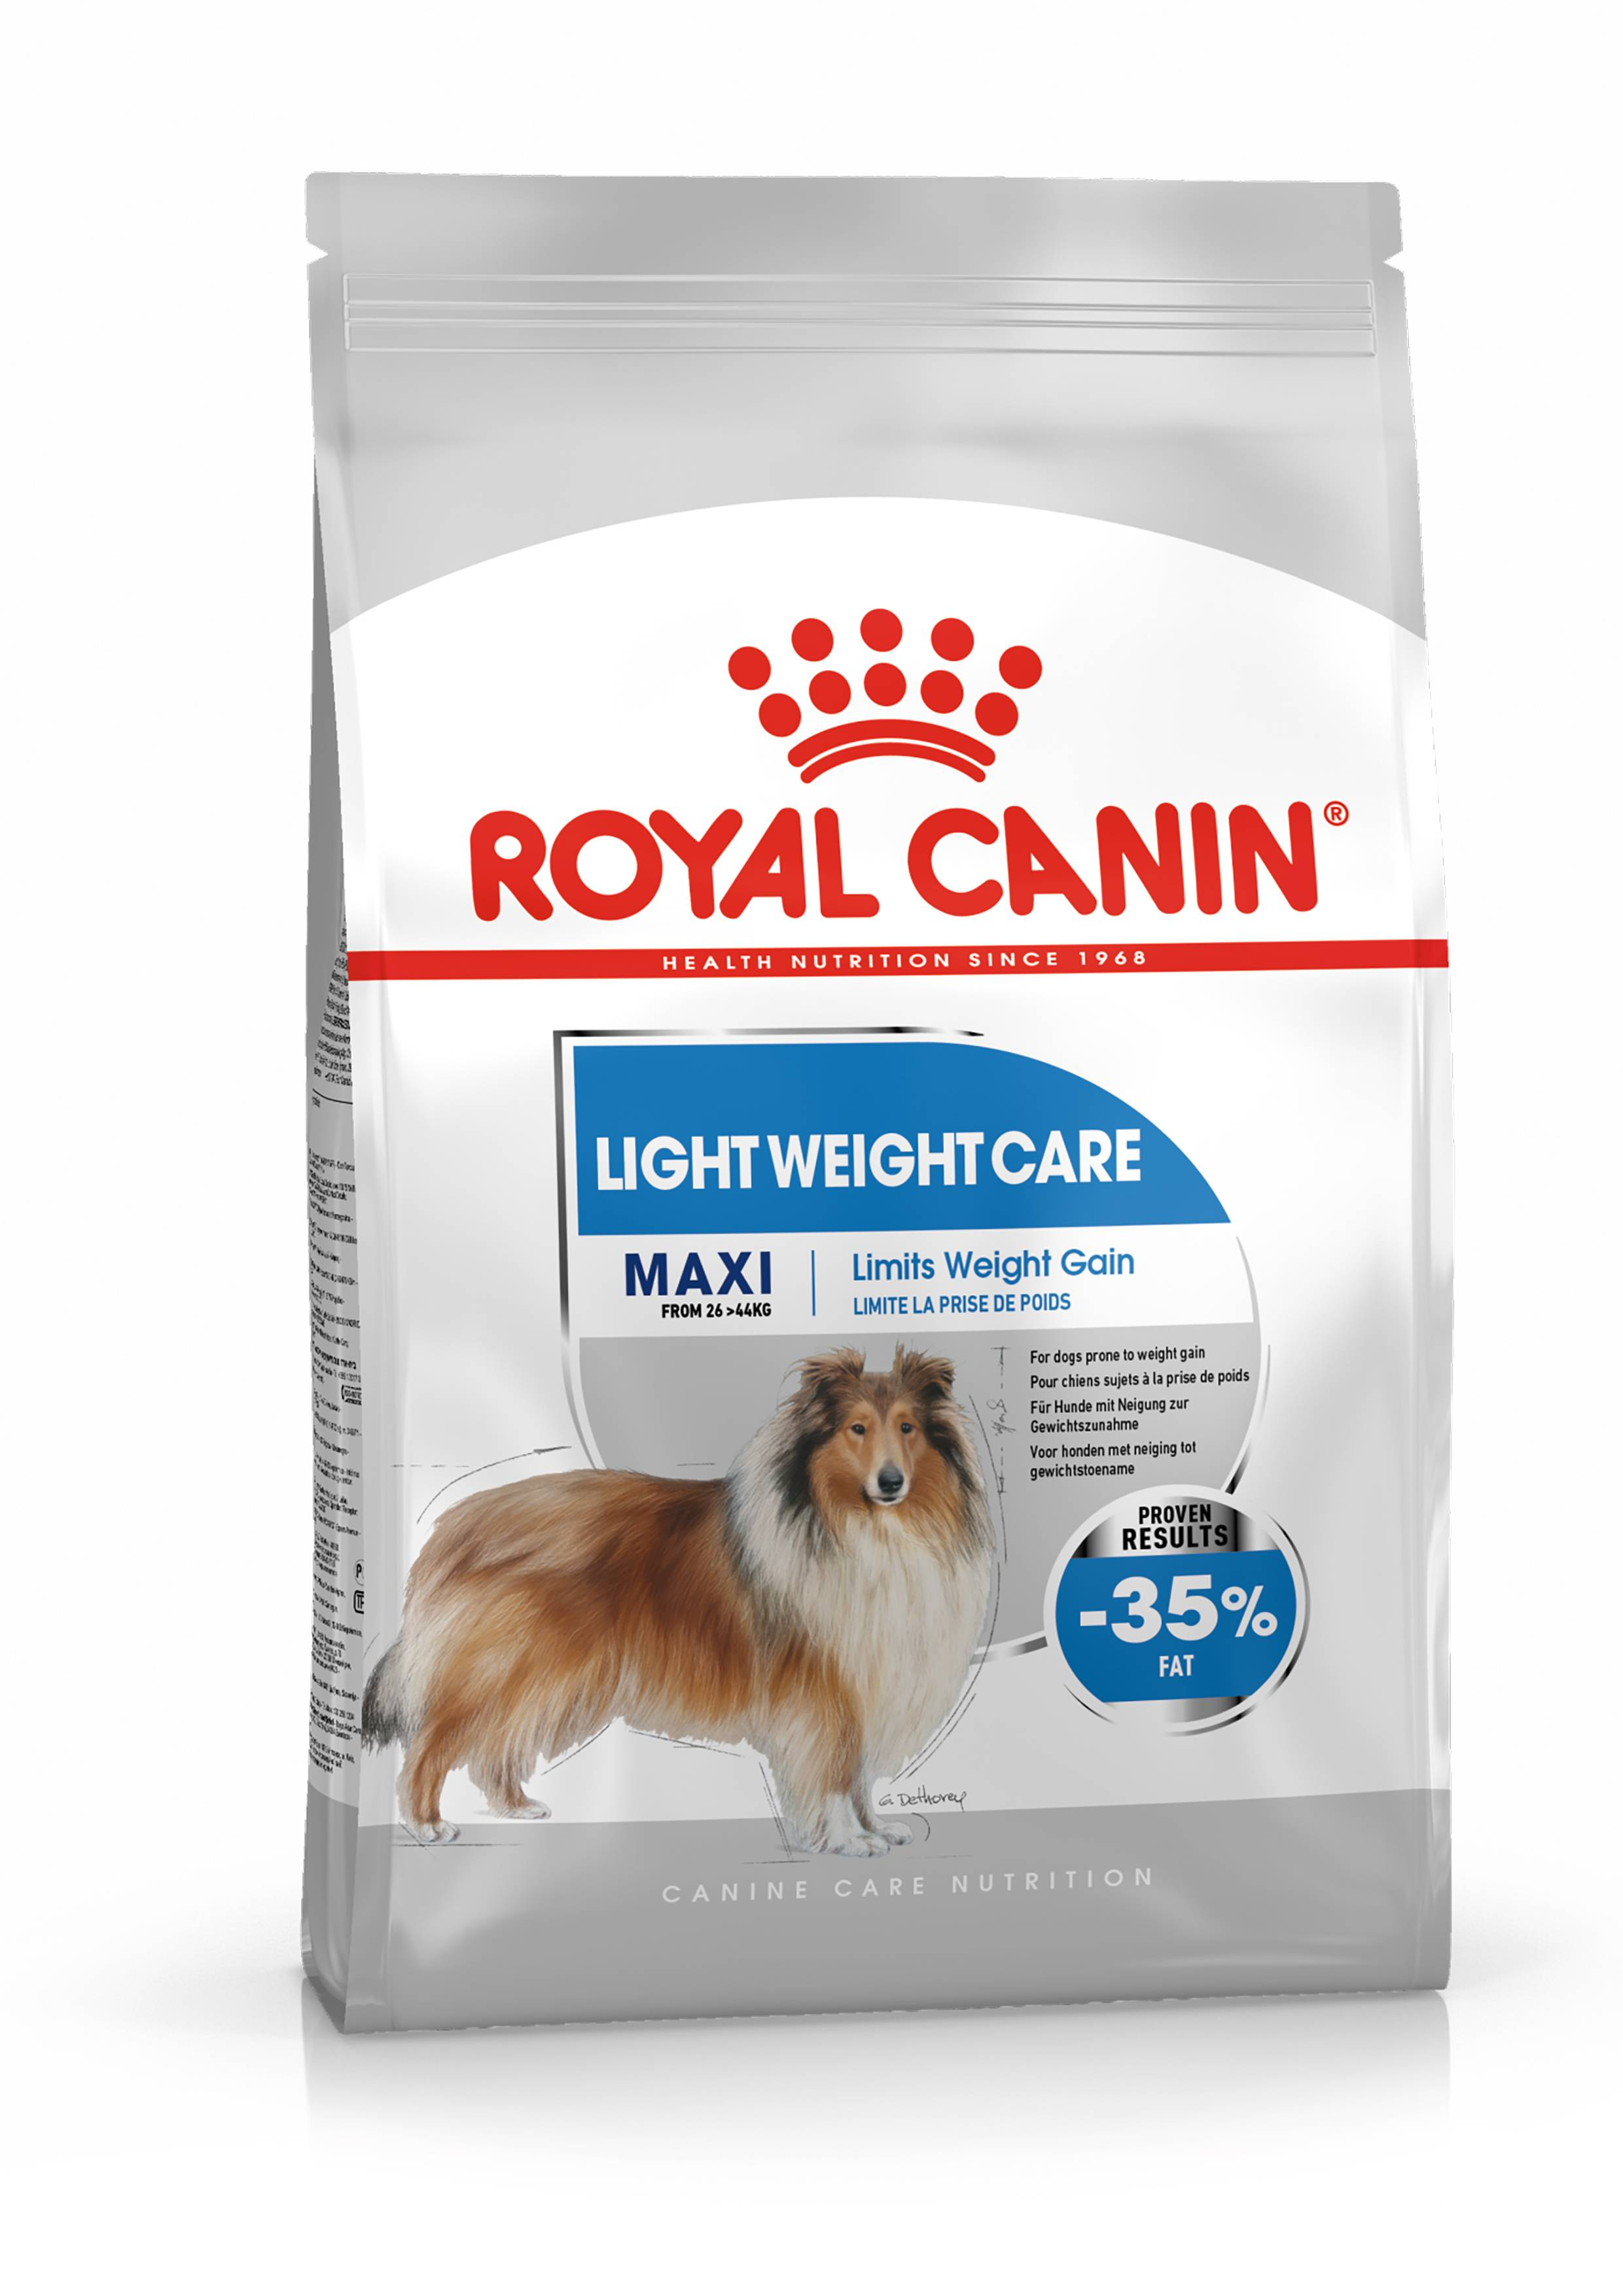 Royal Canin Maxi Light Weight Care pour chien 2 x 3 kg